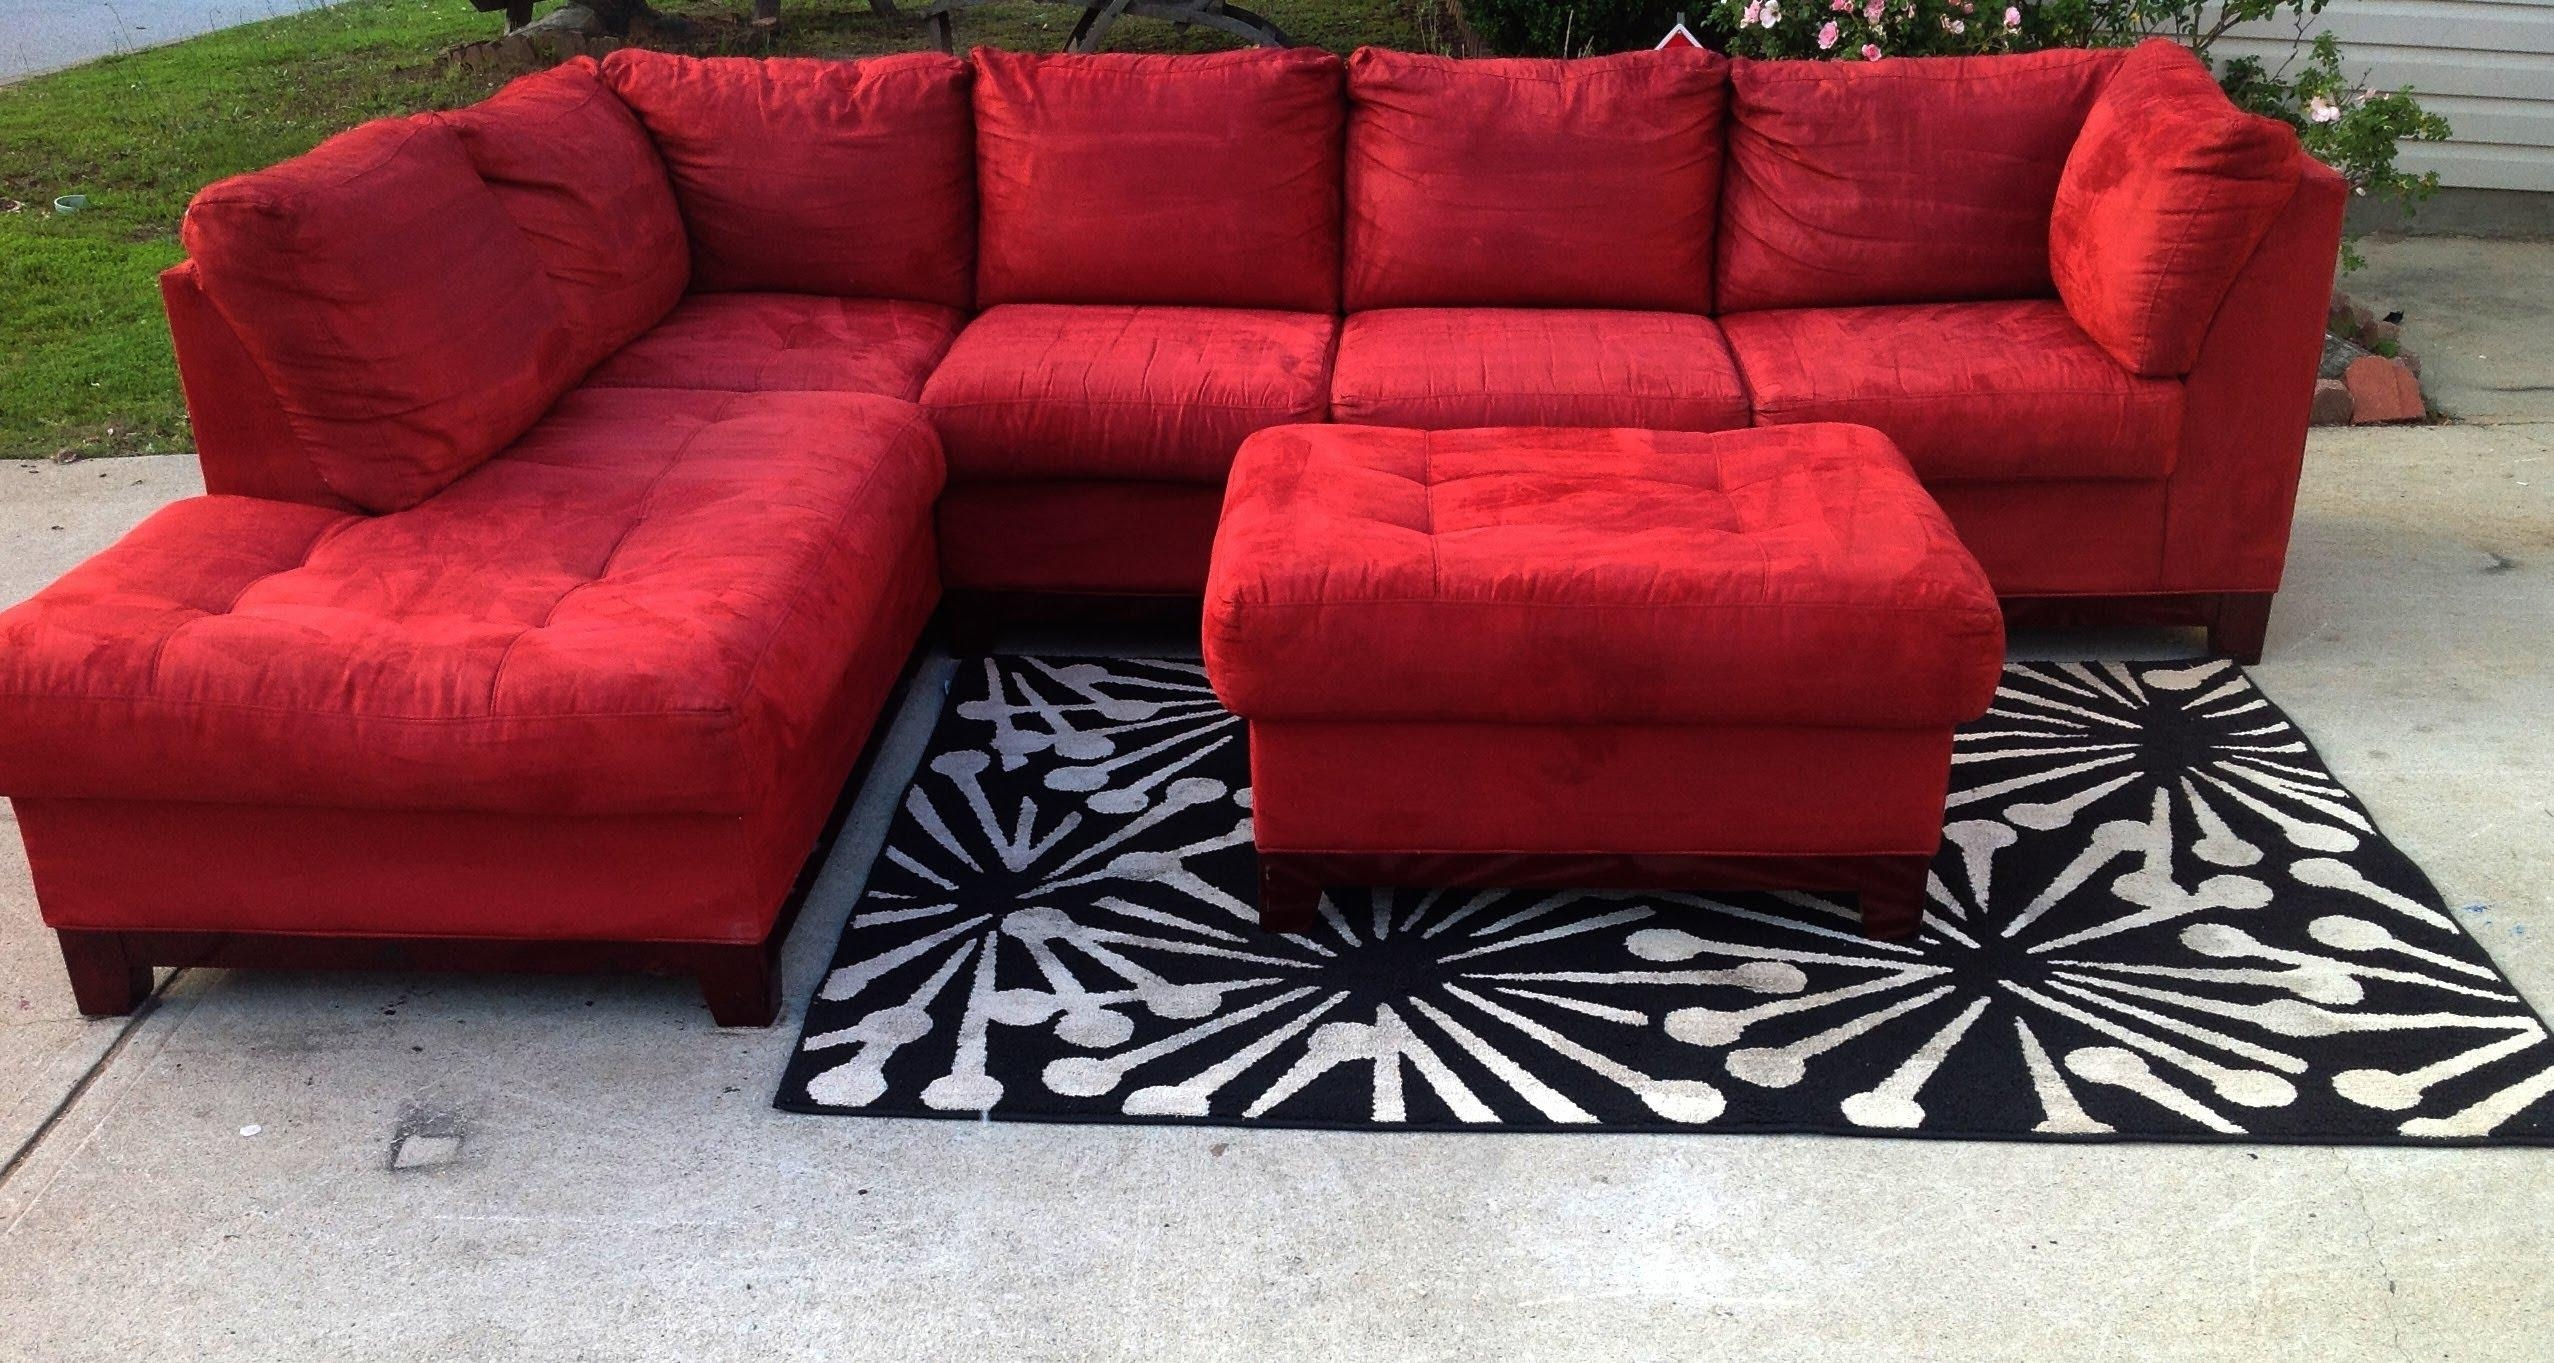 Cindy Crawford Sofa Within Cindy Crawford Microfiber Sofas (Image 12 of 20)